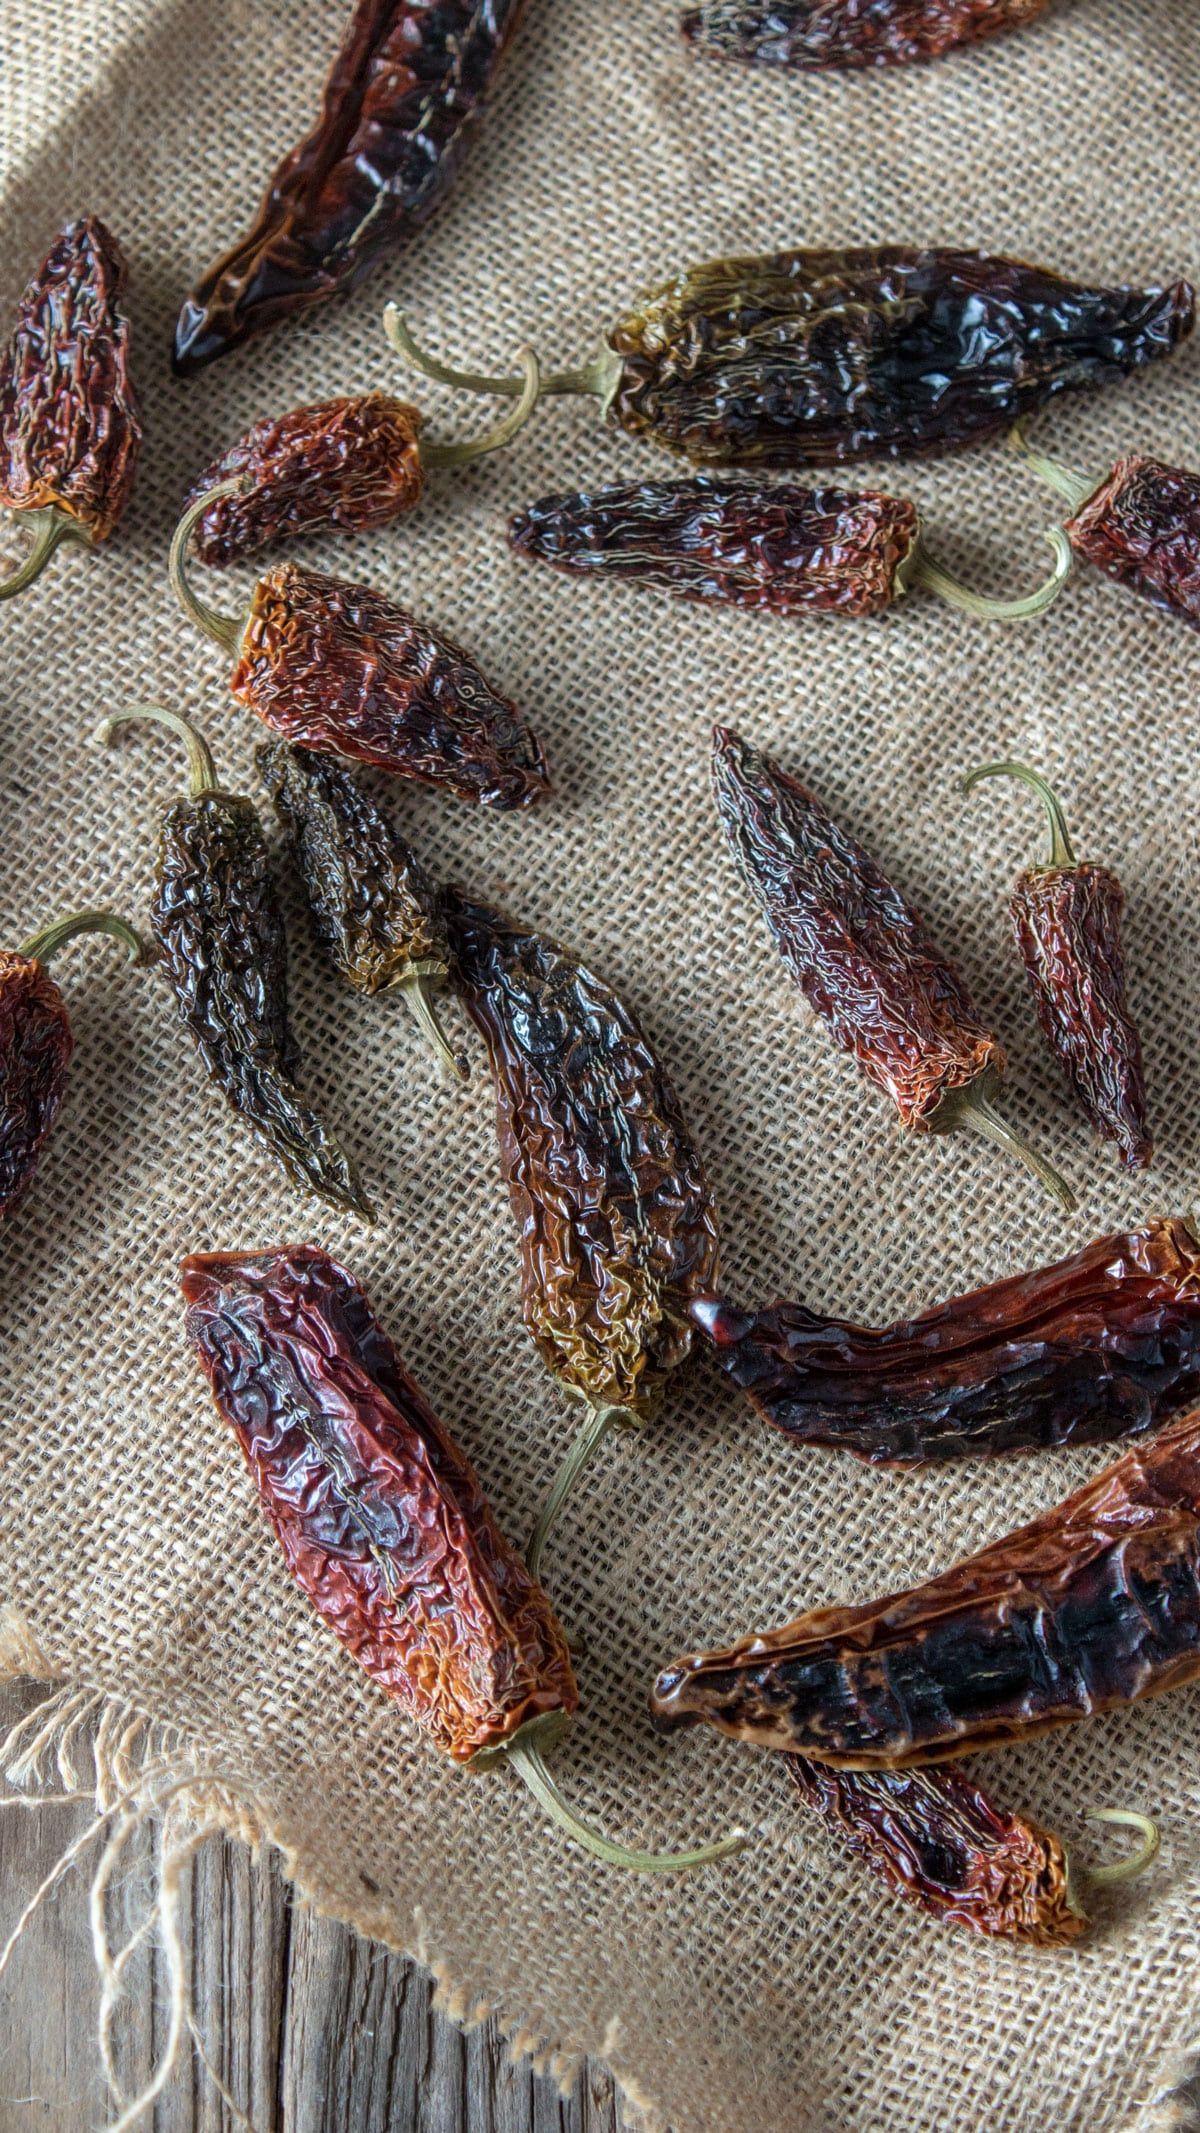 Dried peppers on burlap.